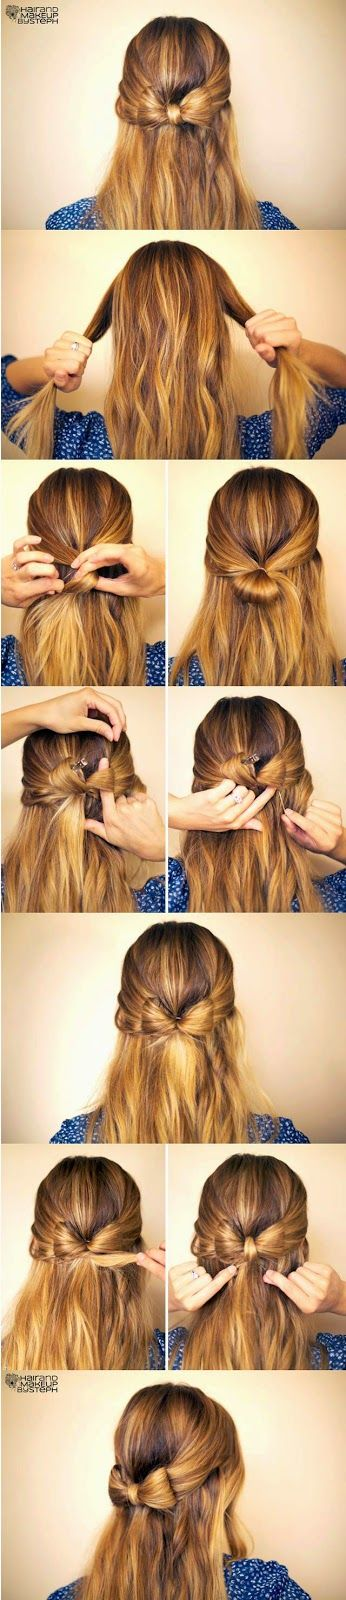 5 Cute Easy Hairstyles Tutorial How To Hairstyles And Haircuts Hair Styles Long Hair Styles Hair Tutorial